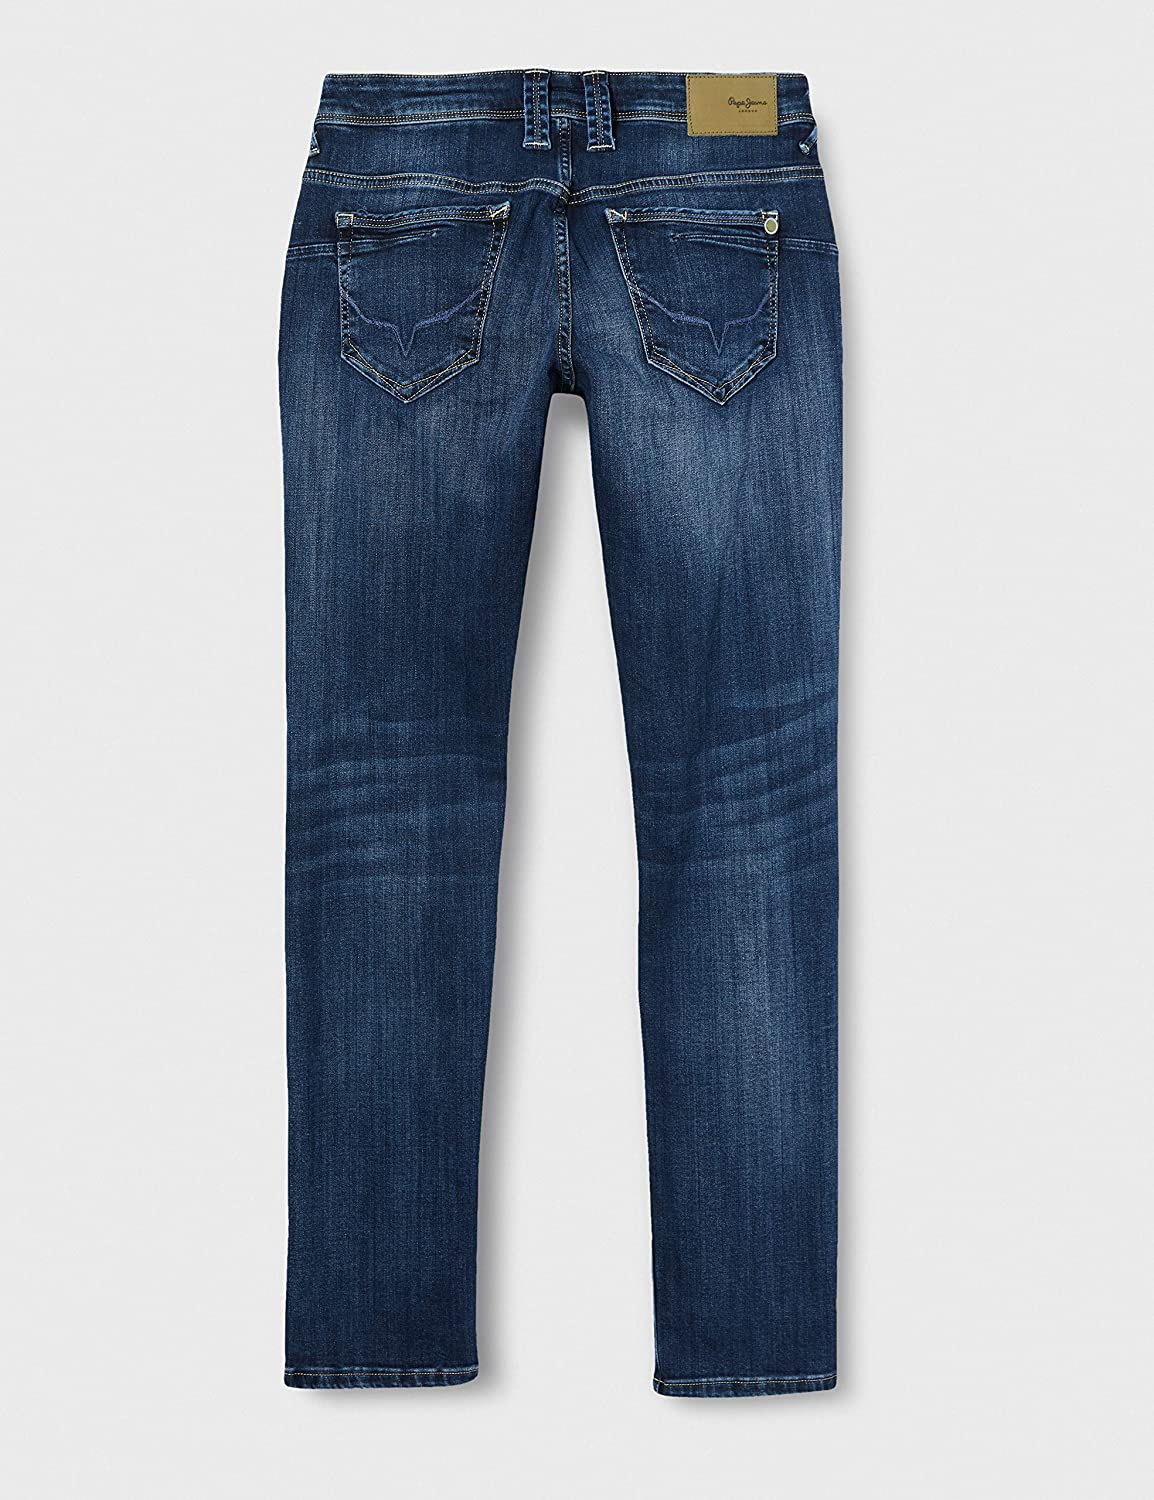 Pepe Jeans Men's Zinc Straight Jeans Blue (Denim 000)